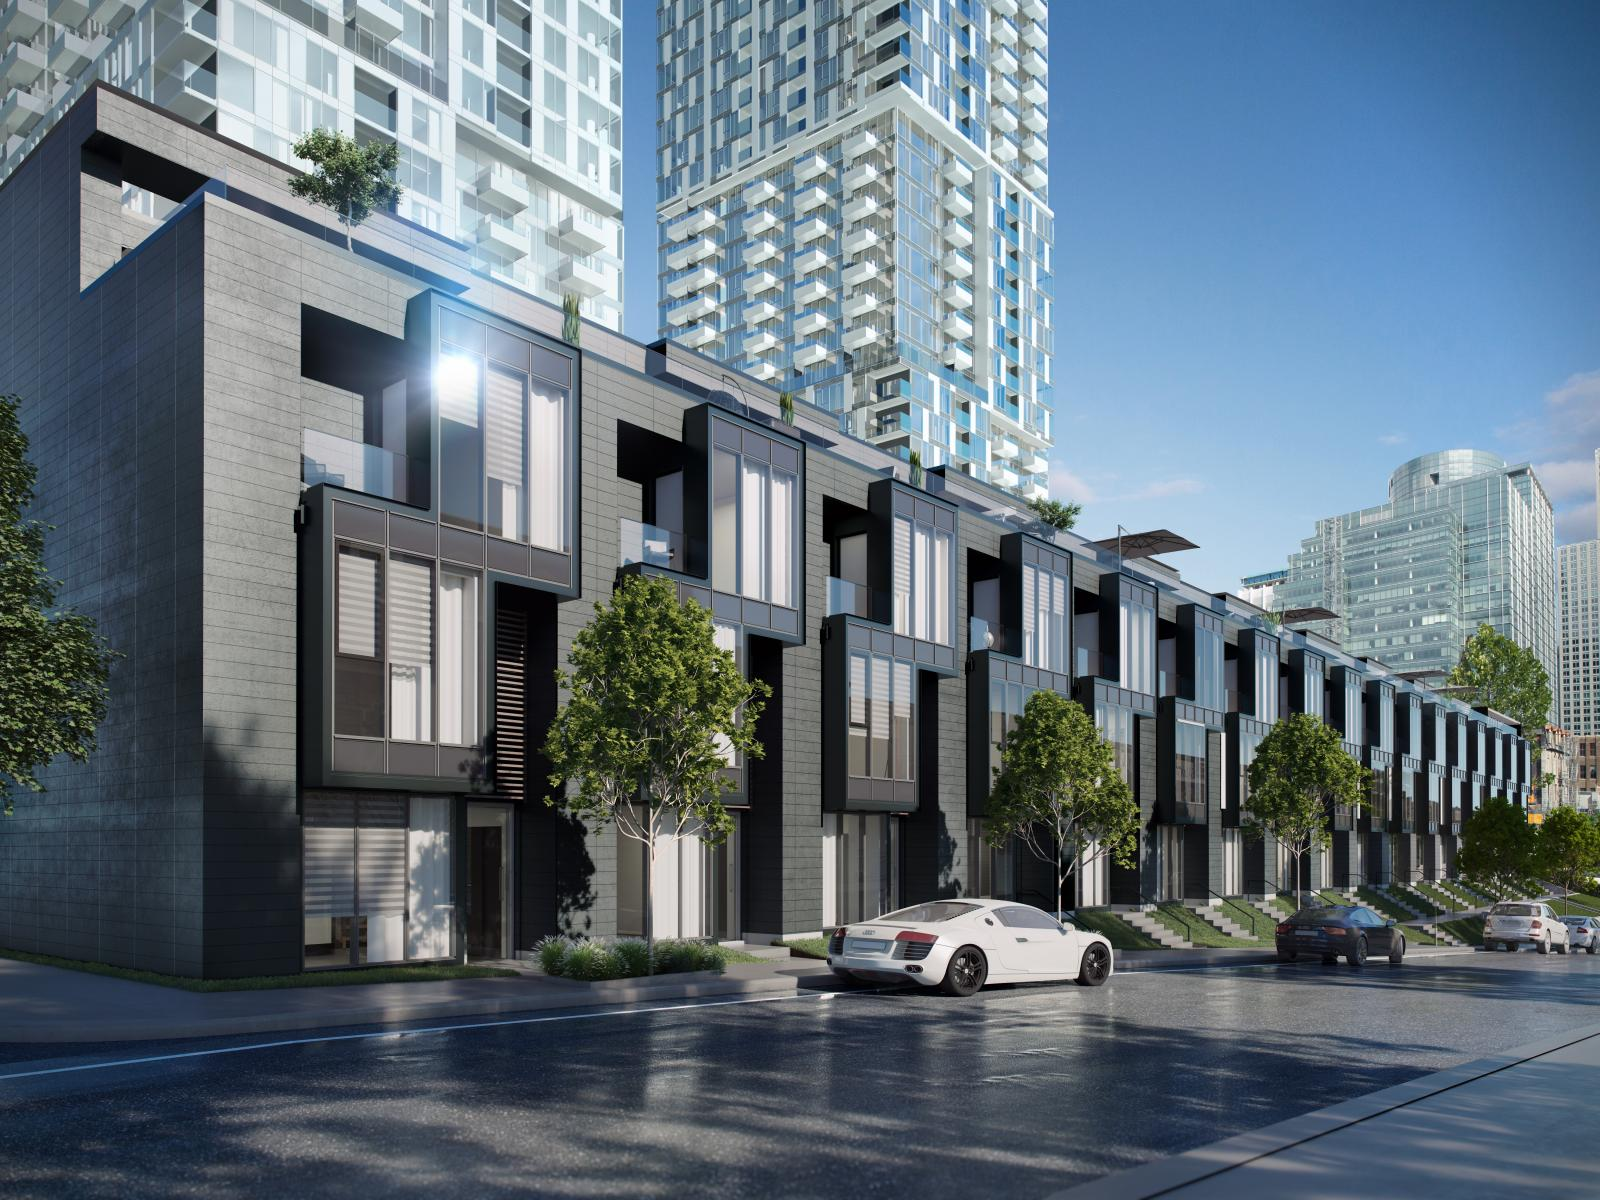 YUL - townhouses | Houses in Downtown